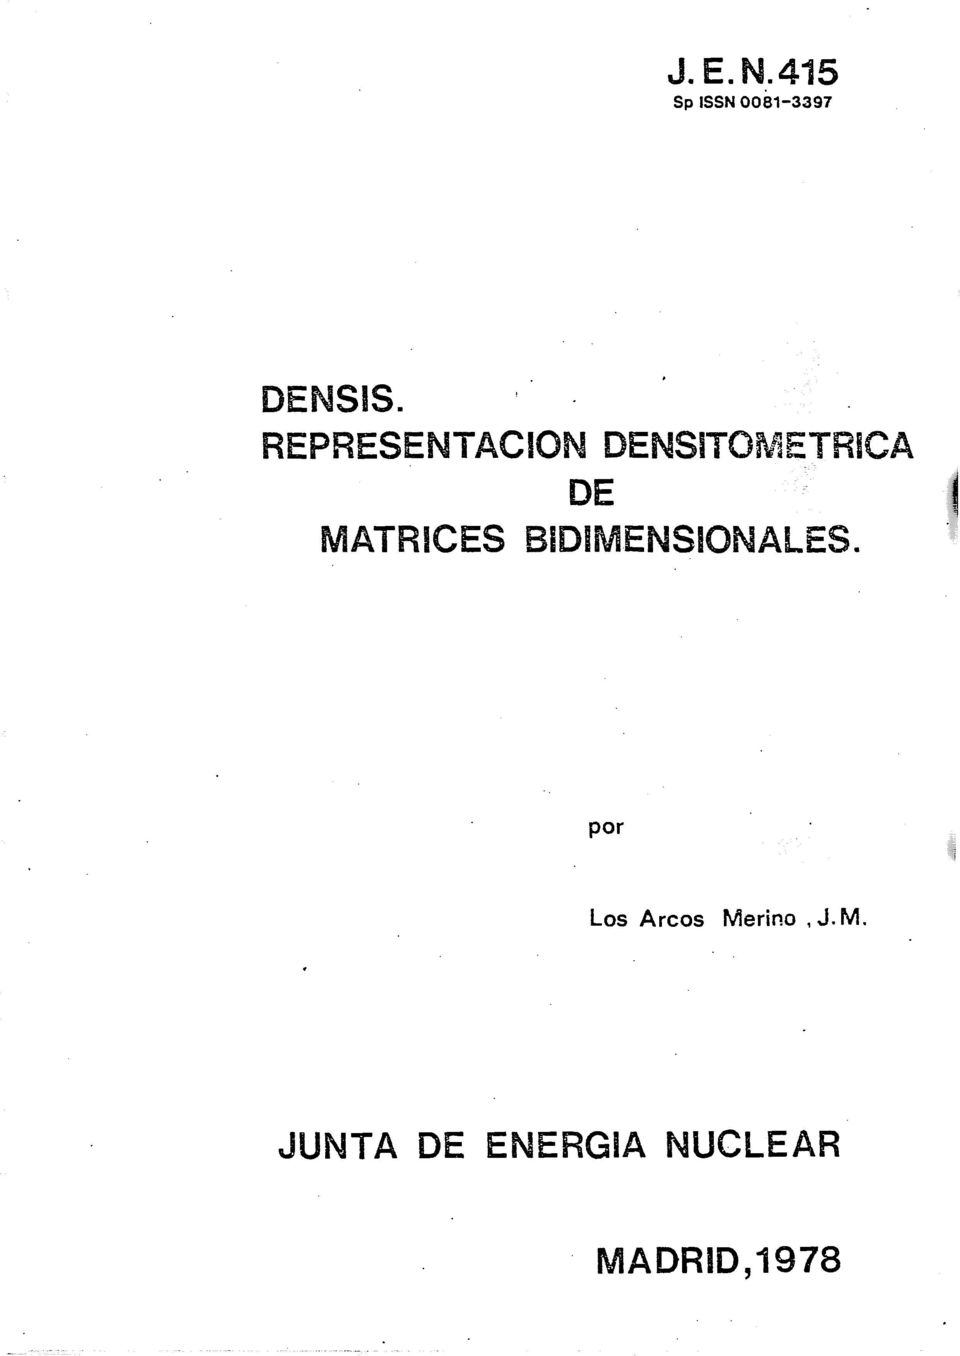 DENSITGWIETRtCA DE MATRICES